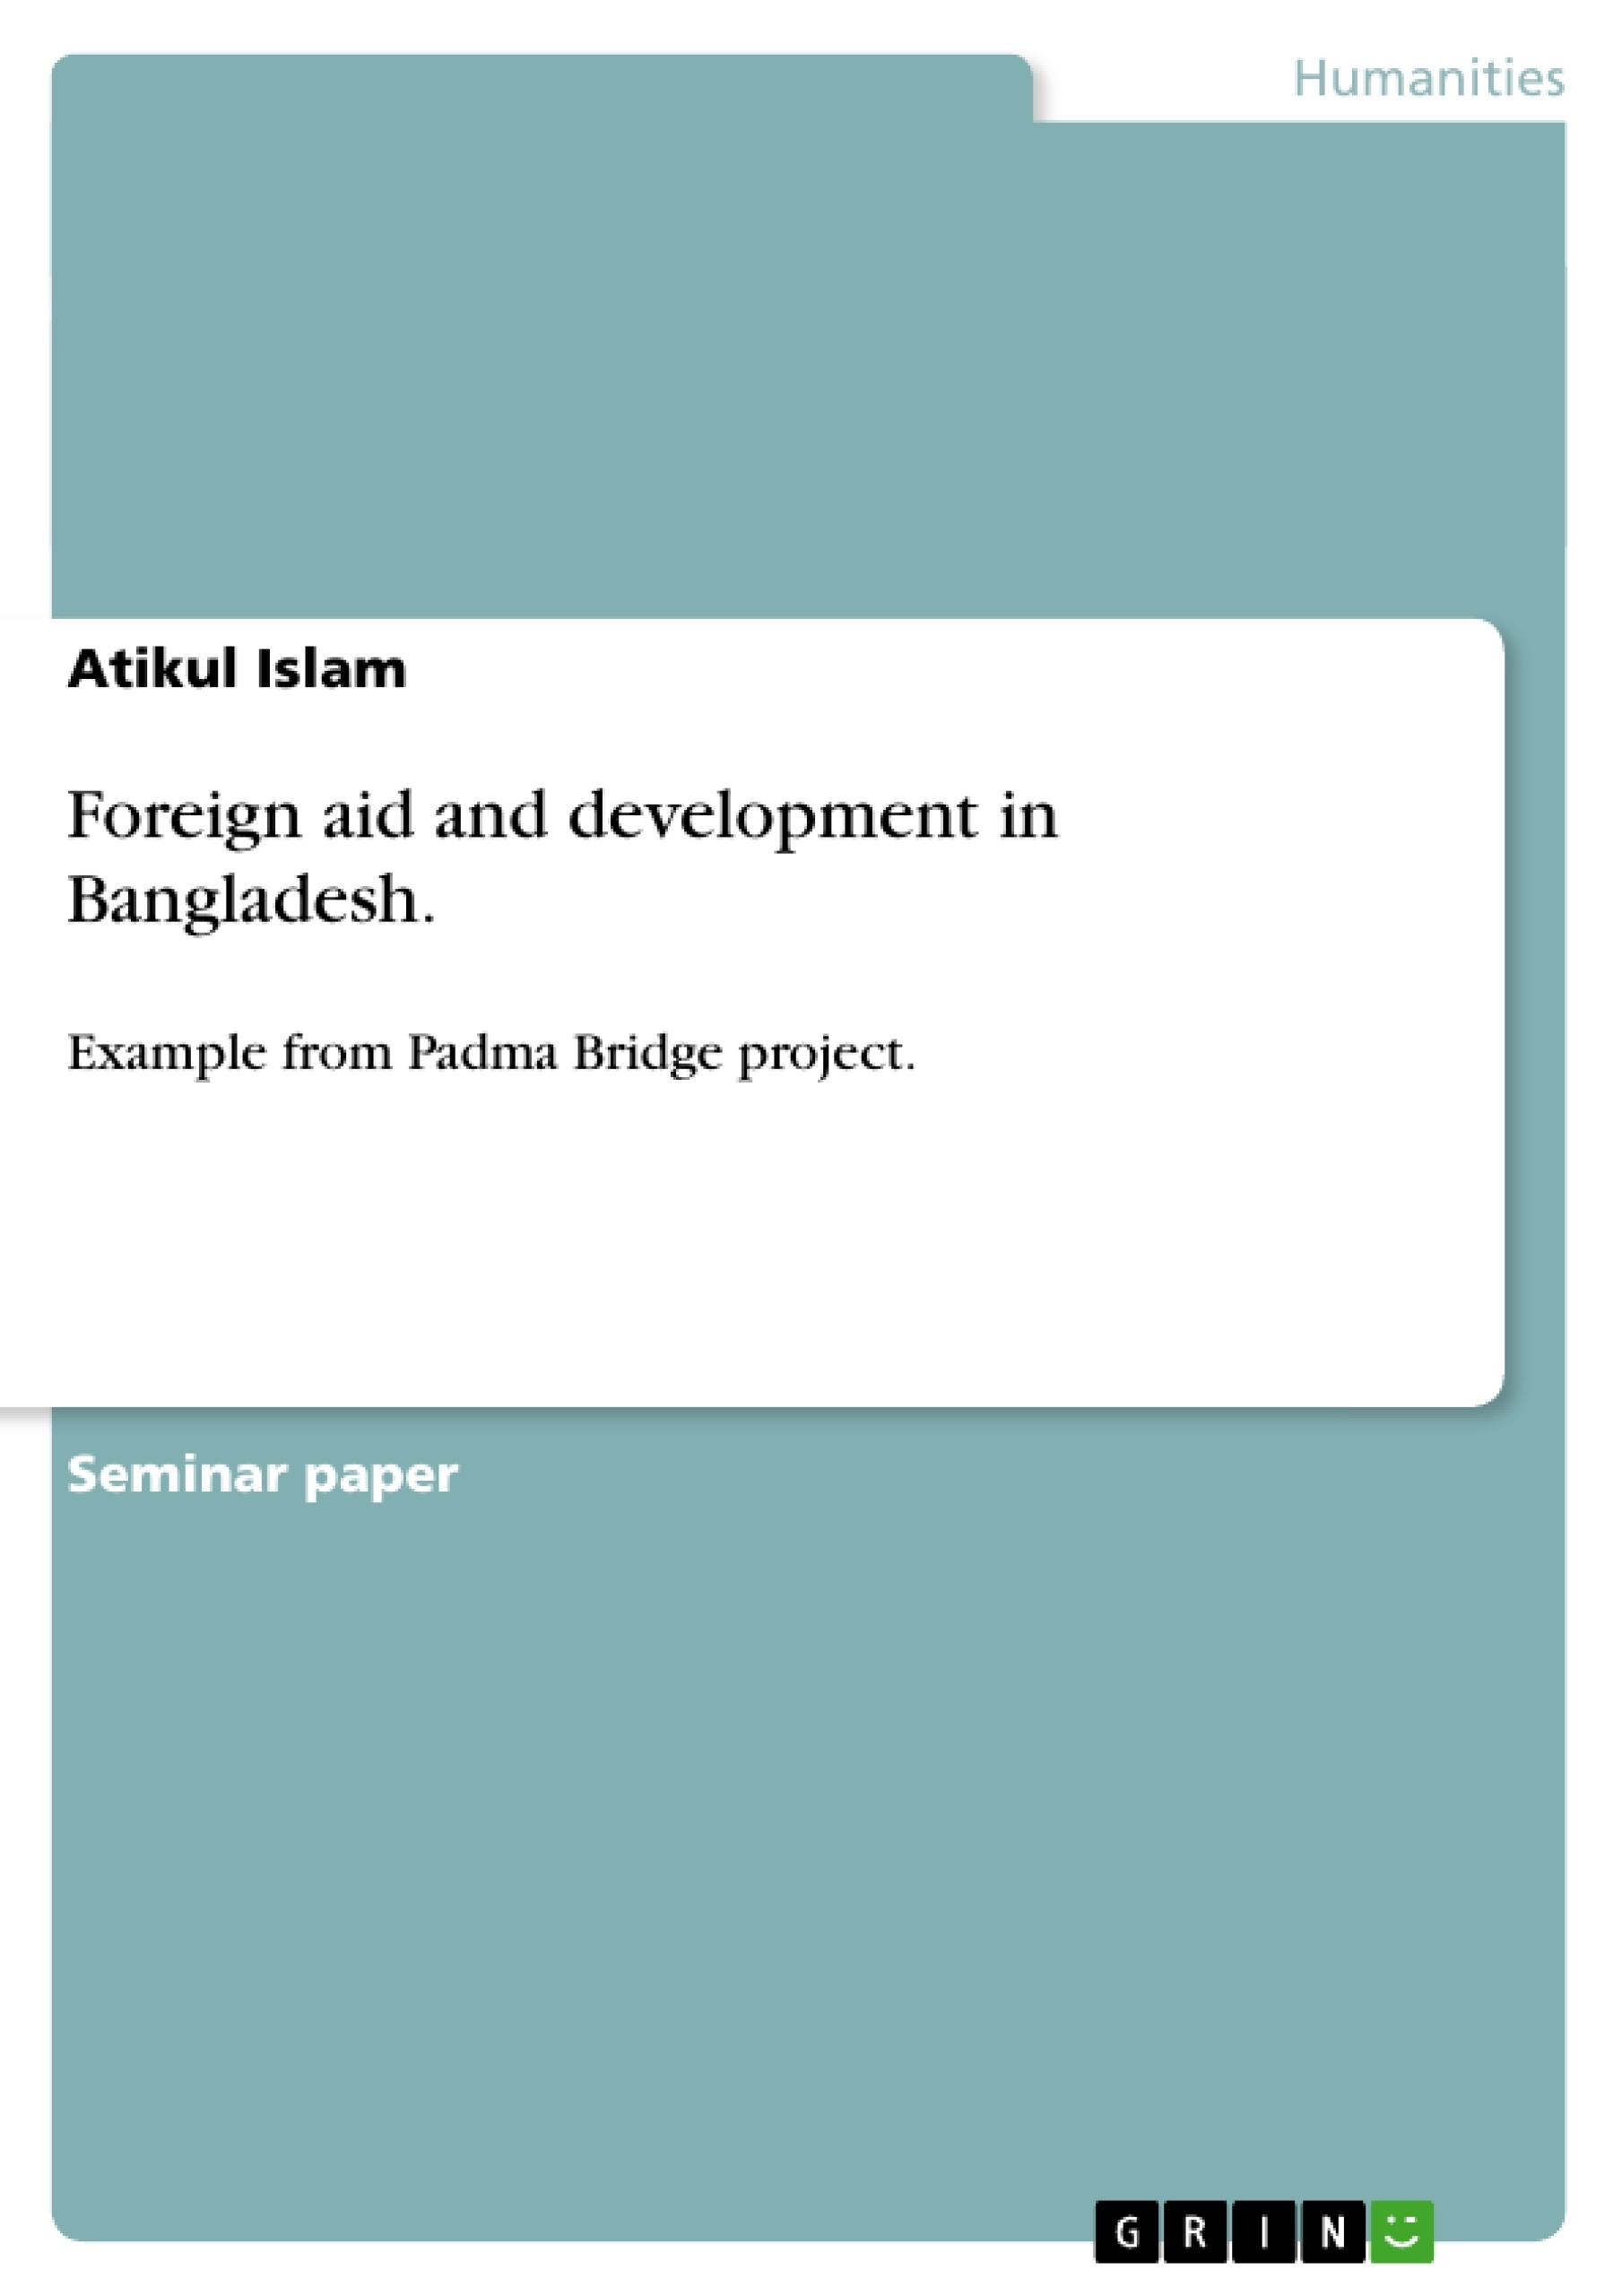 Title: Foreign aid and development in Bangladesh.